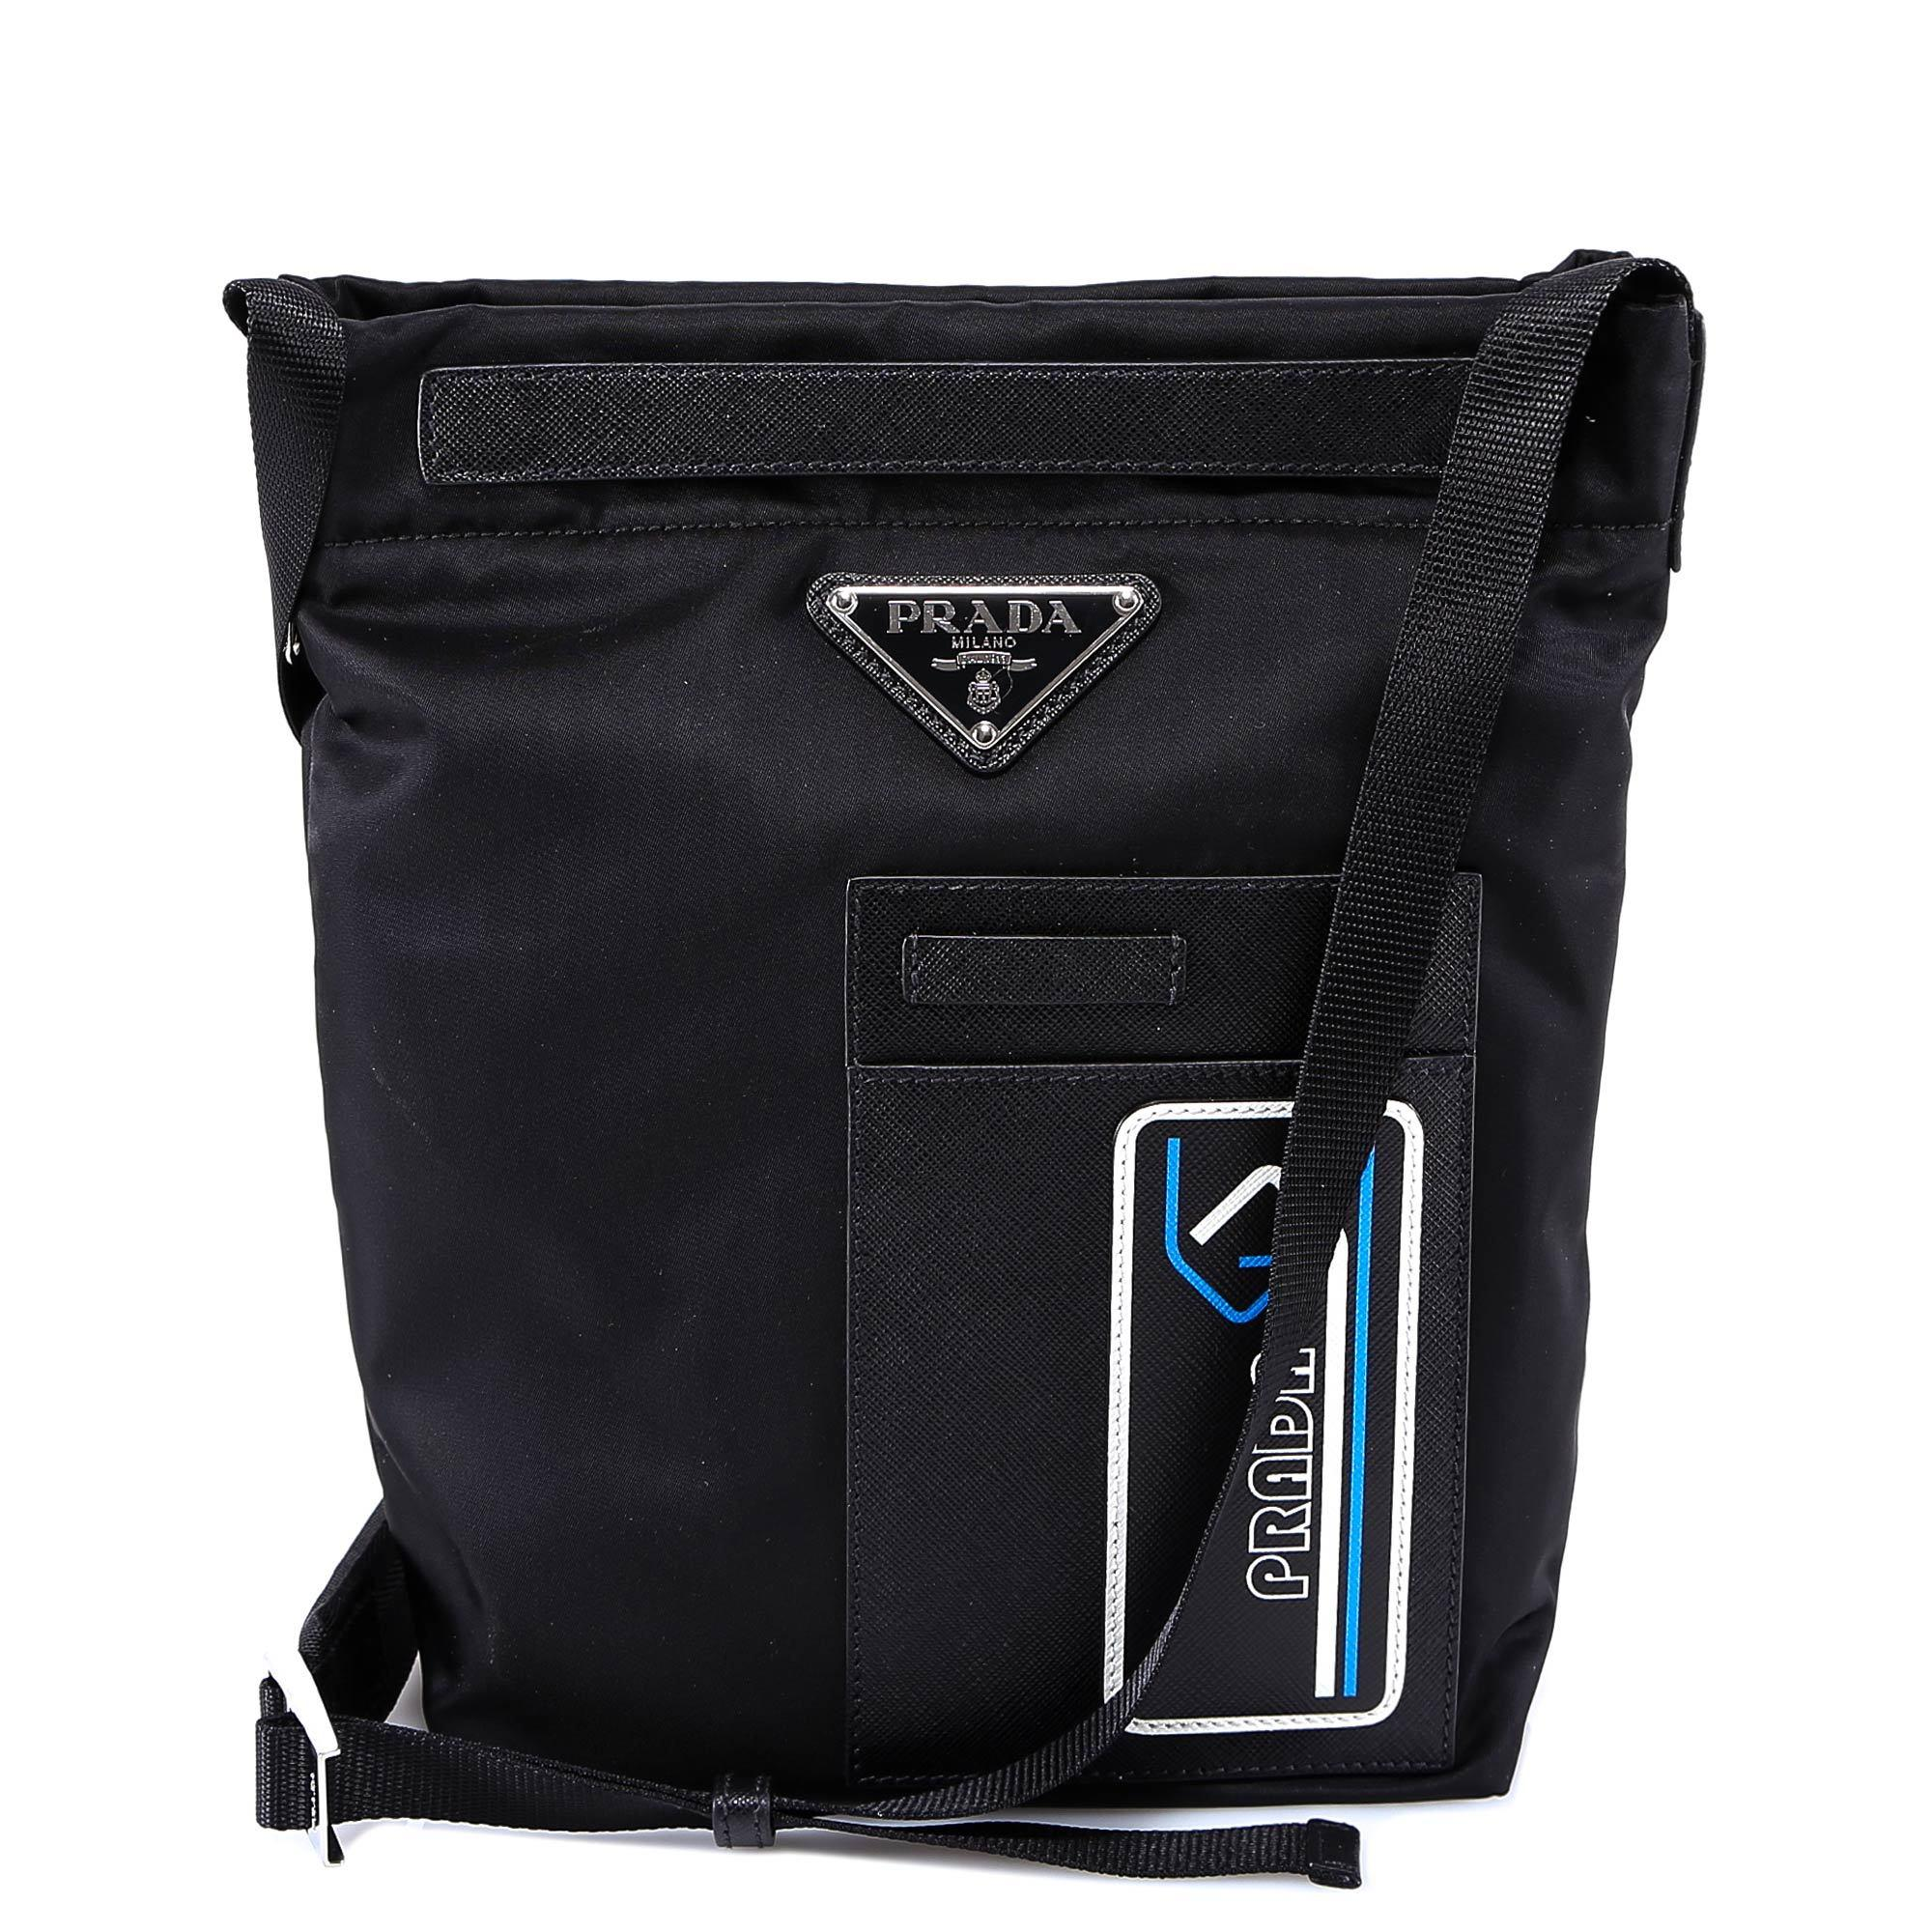 4652750f308f2a Lyst - Prada Logo Detail Messenger Bag in Black for Men